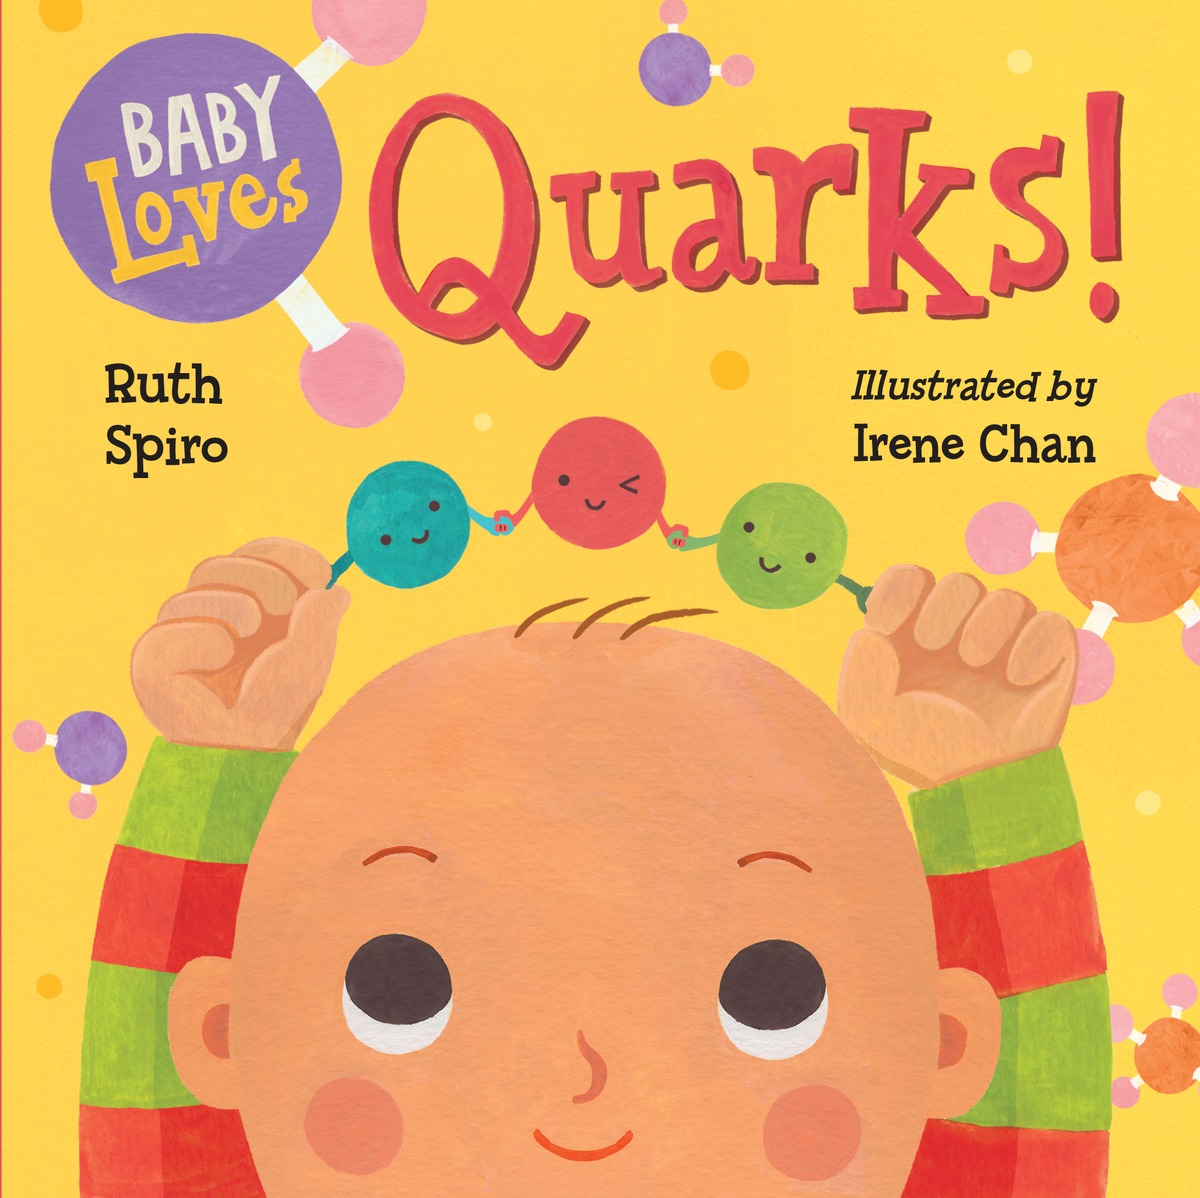 Baby Loves Quarks!